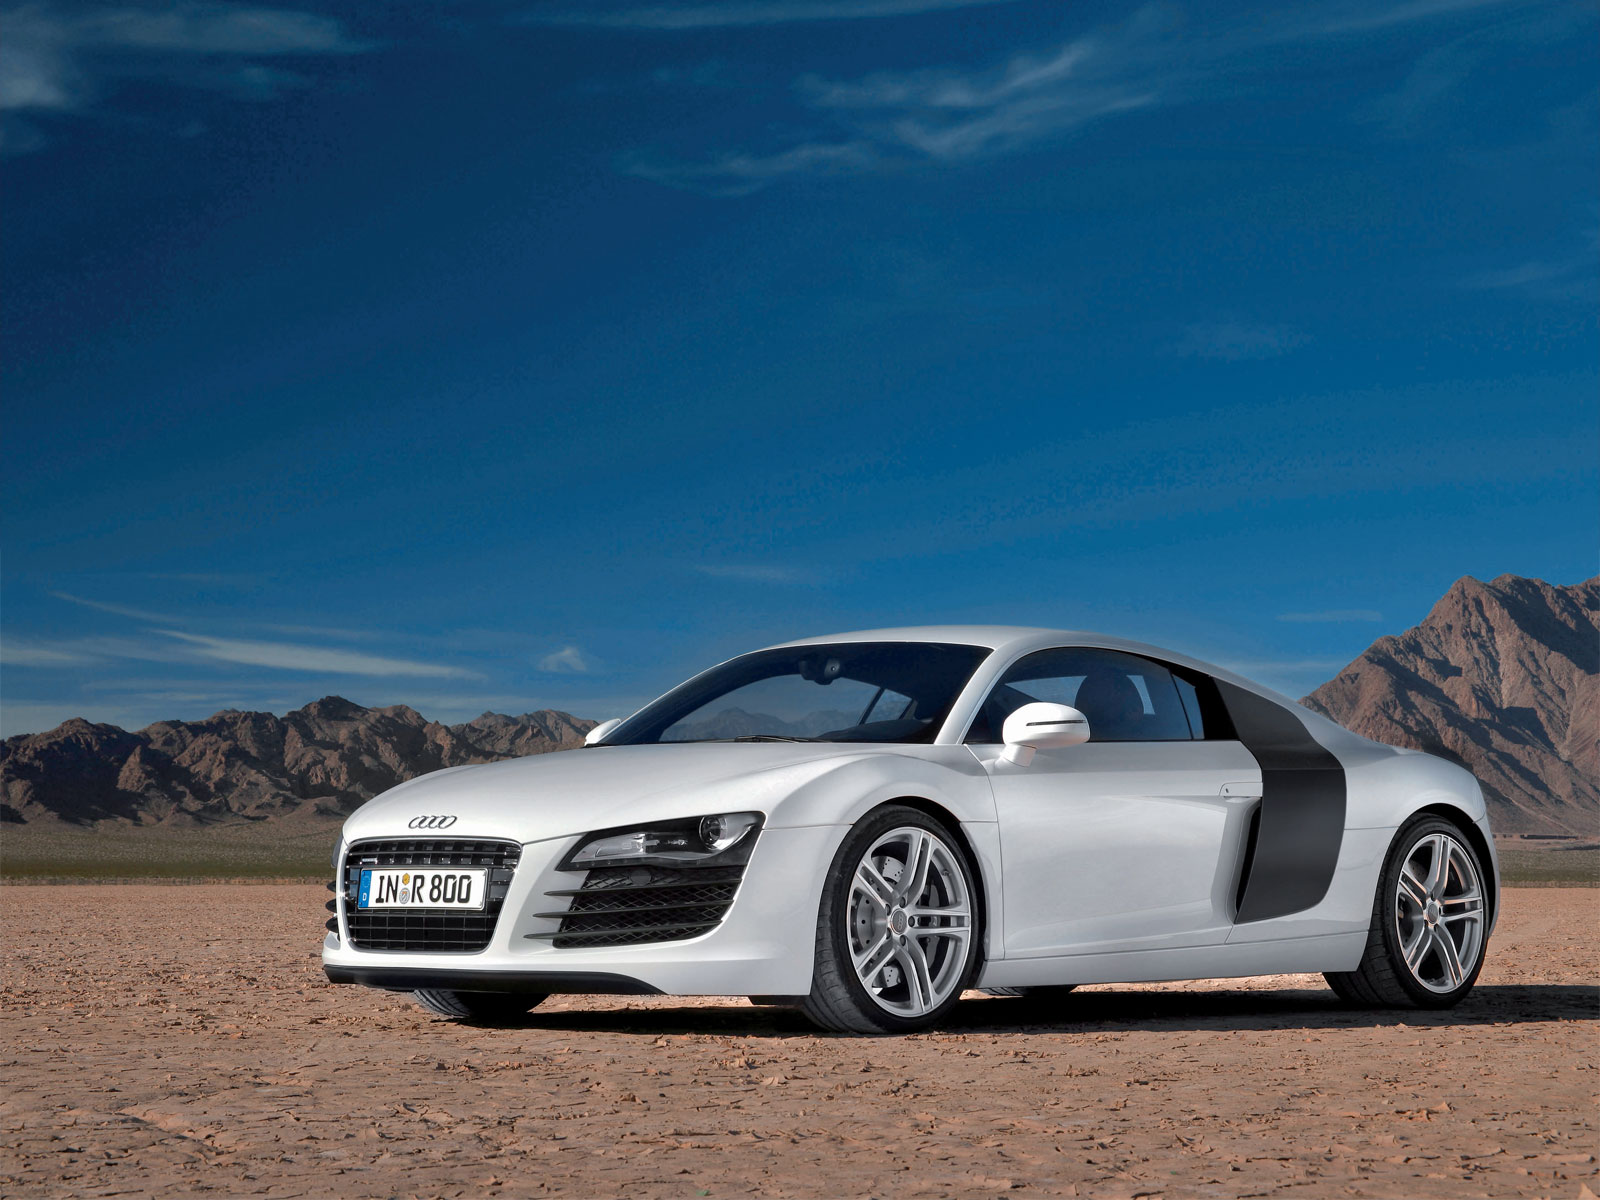 http://3.bp.blogspot.com/-lN5TawJF3PY/T1Zx7bkR7wI/AAAAAAAACFk/U3Wb5rWzoF4/s1600/07-cars-wallpapers-audi-r8-car-wallpaper.jpg